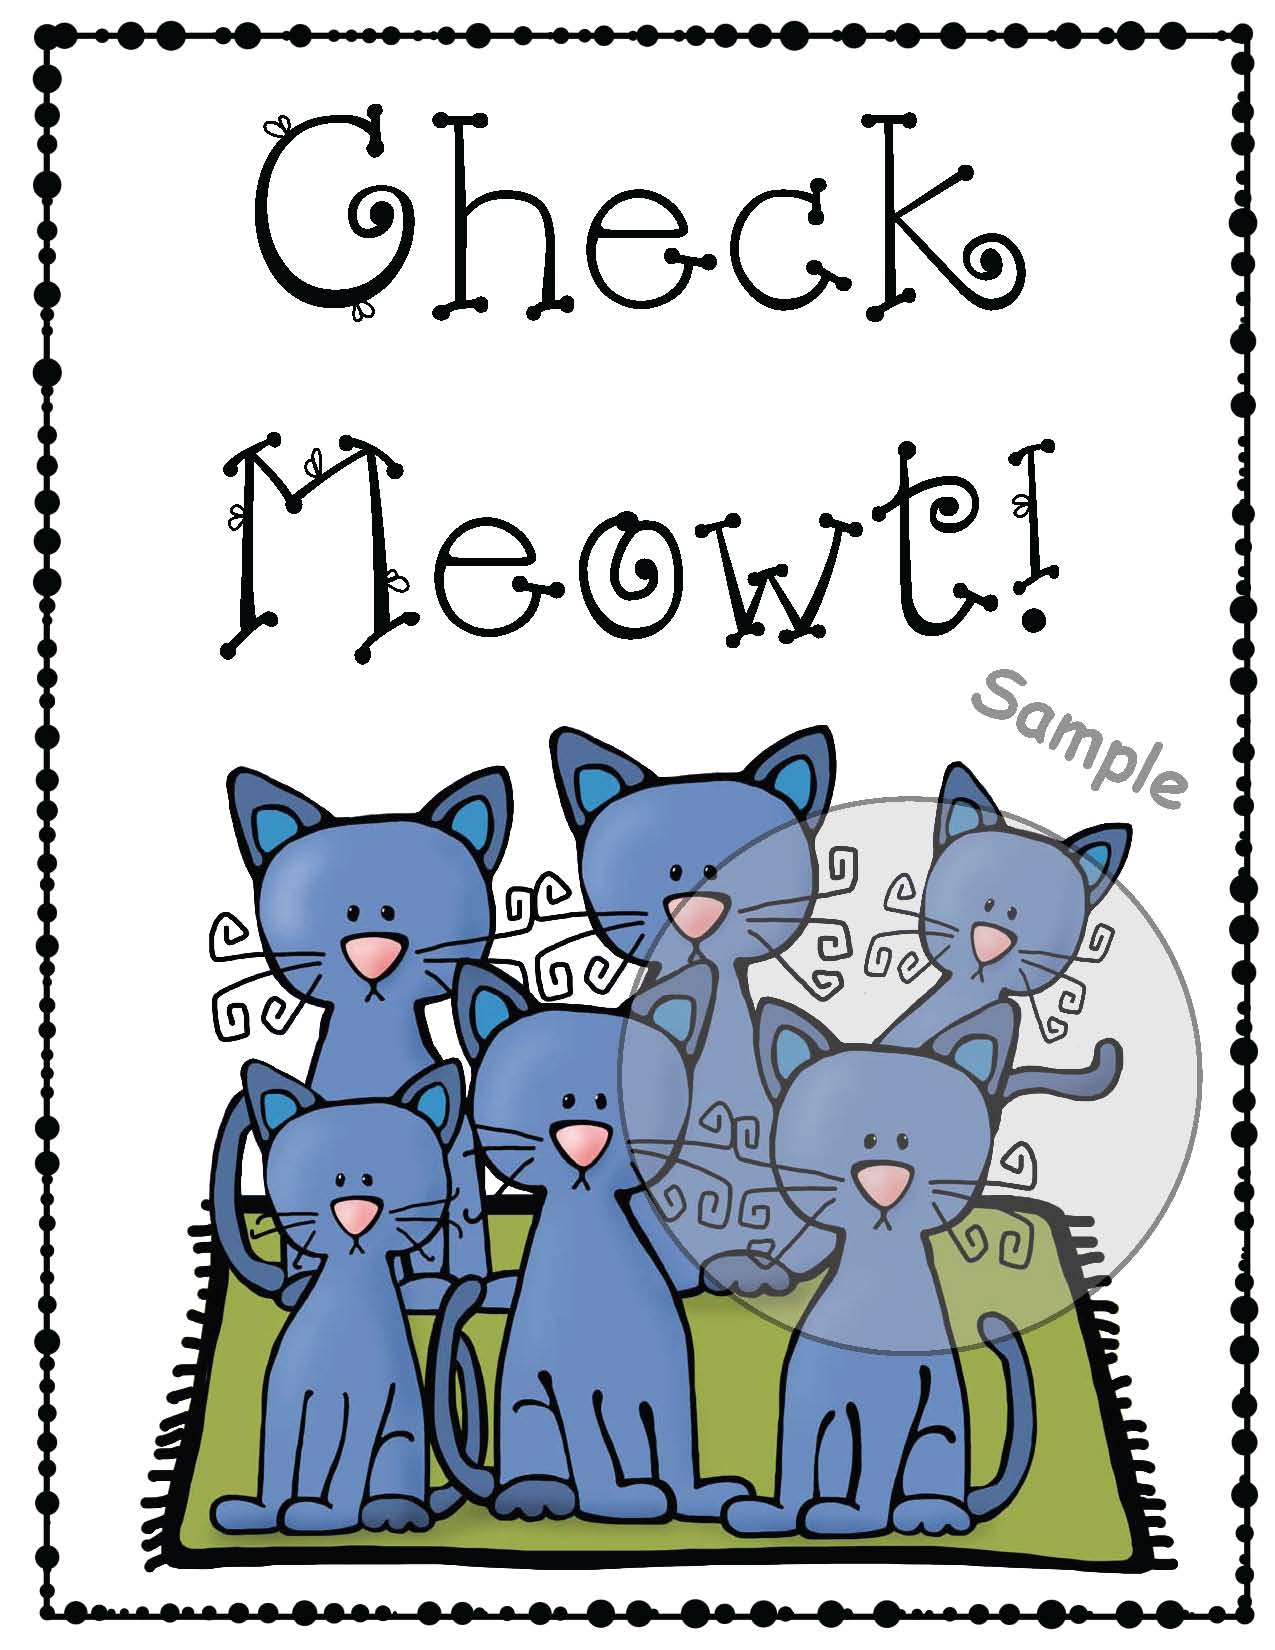 pete the cat activities, pete the cat crafts, cat crafts, back to school writing prompts, back to school bulletin boards, icebreakers, icebreakers for back to school, getting to know you activities